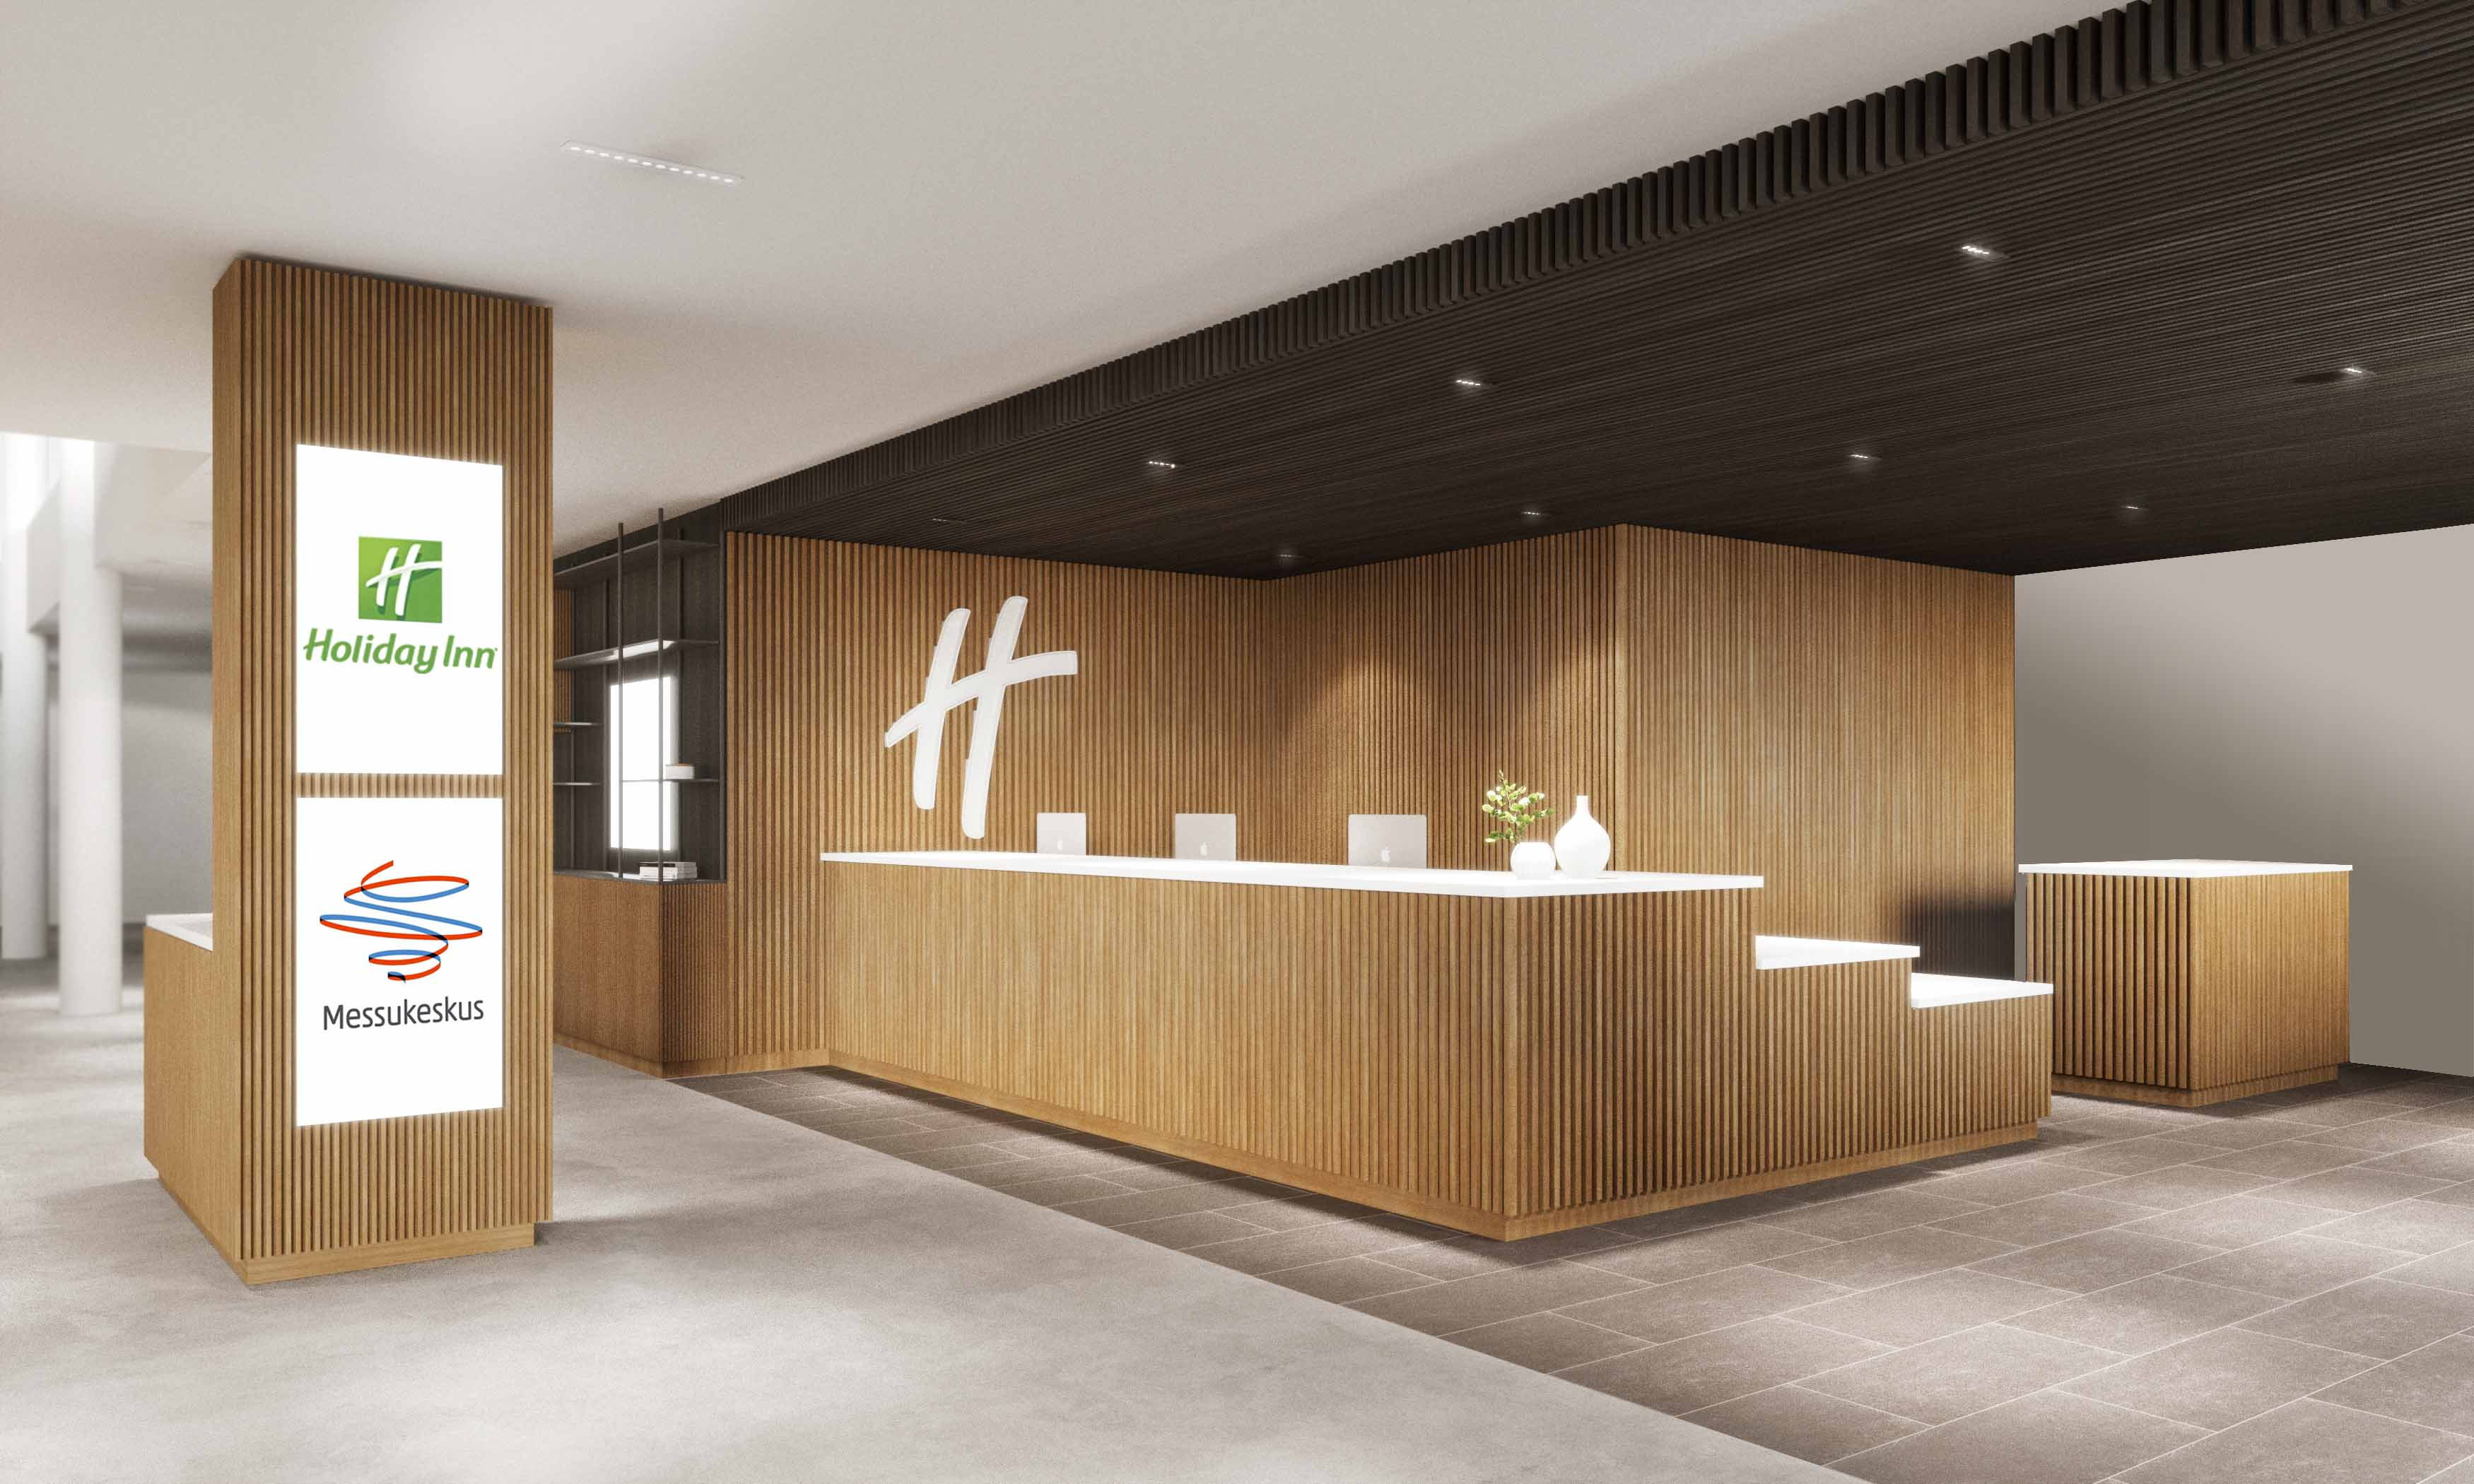 We will open the best event hotel in northern Europe in 2019